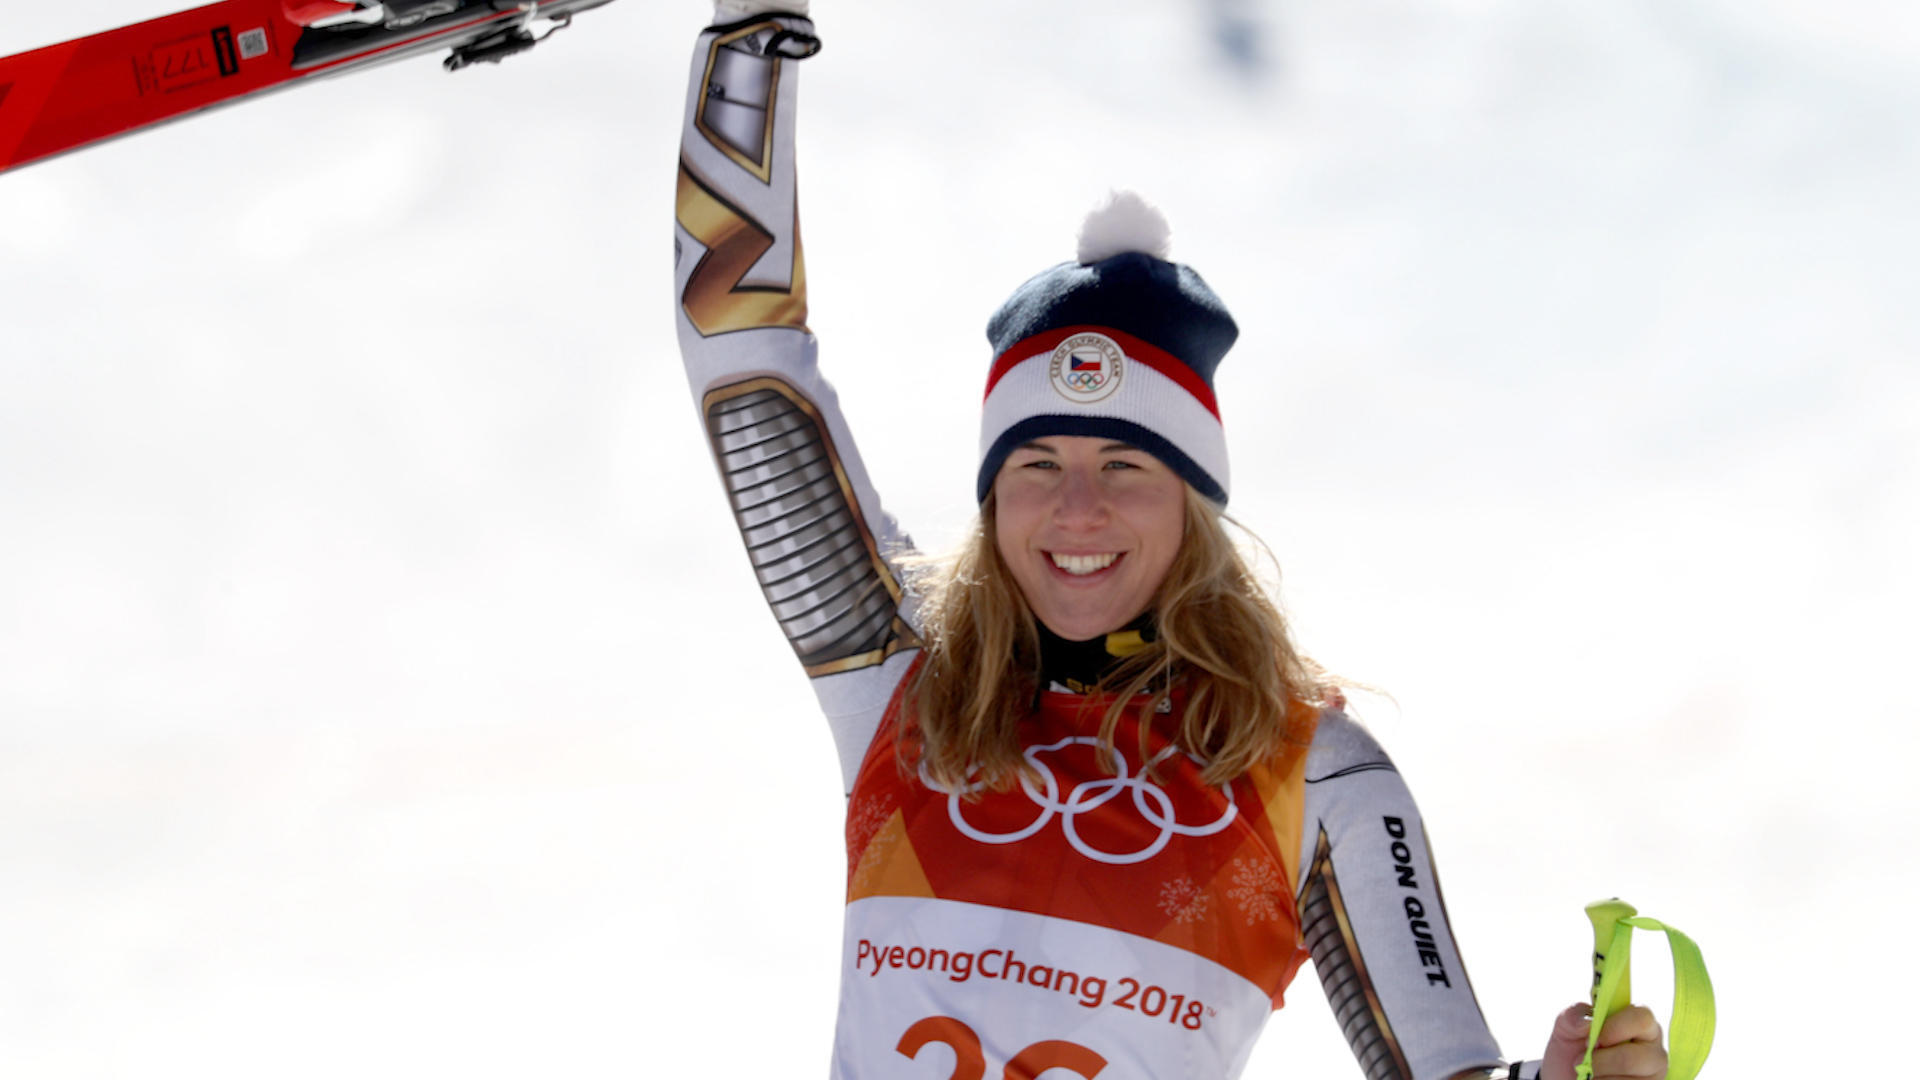 Olympics: How fast do downhill skiers go? A guide to Lindsey Vonn's best event